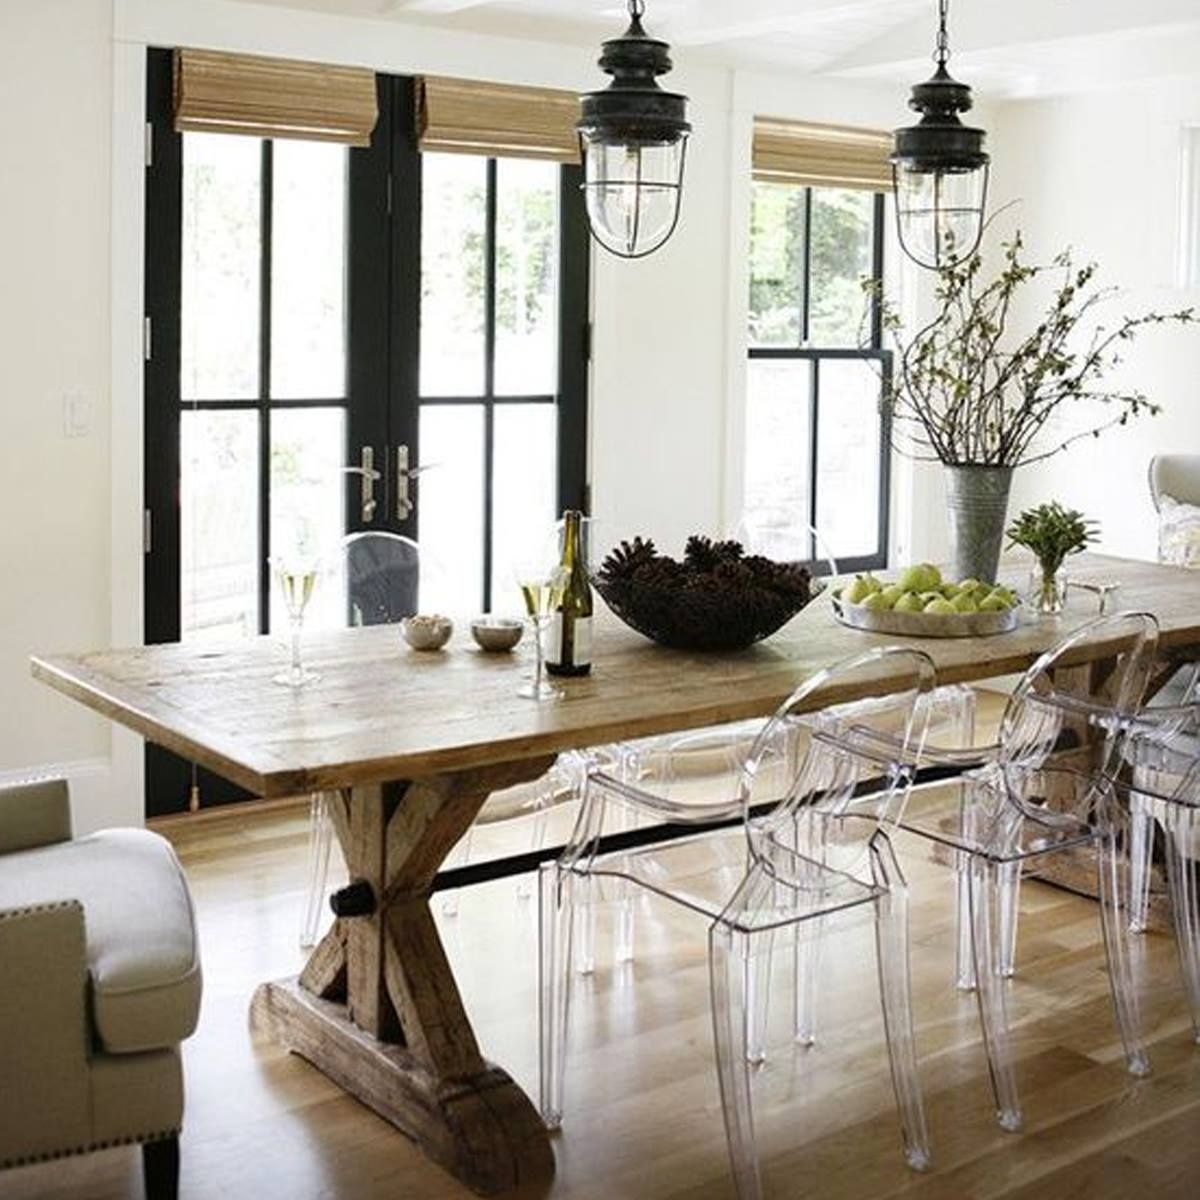 We love the mix of classic and contemporary styles used in